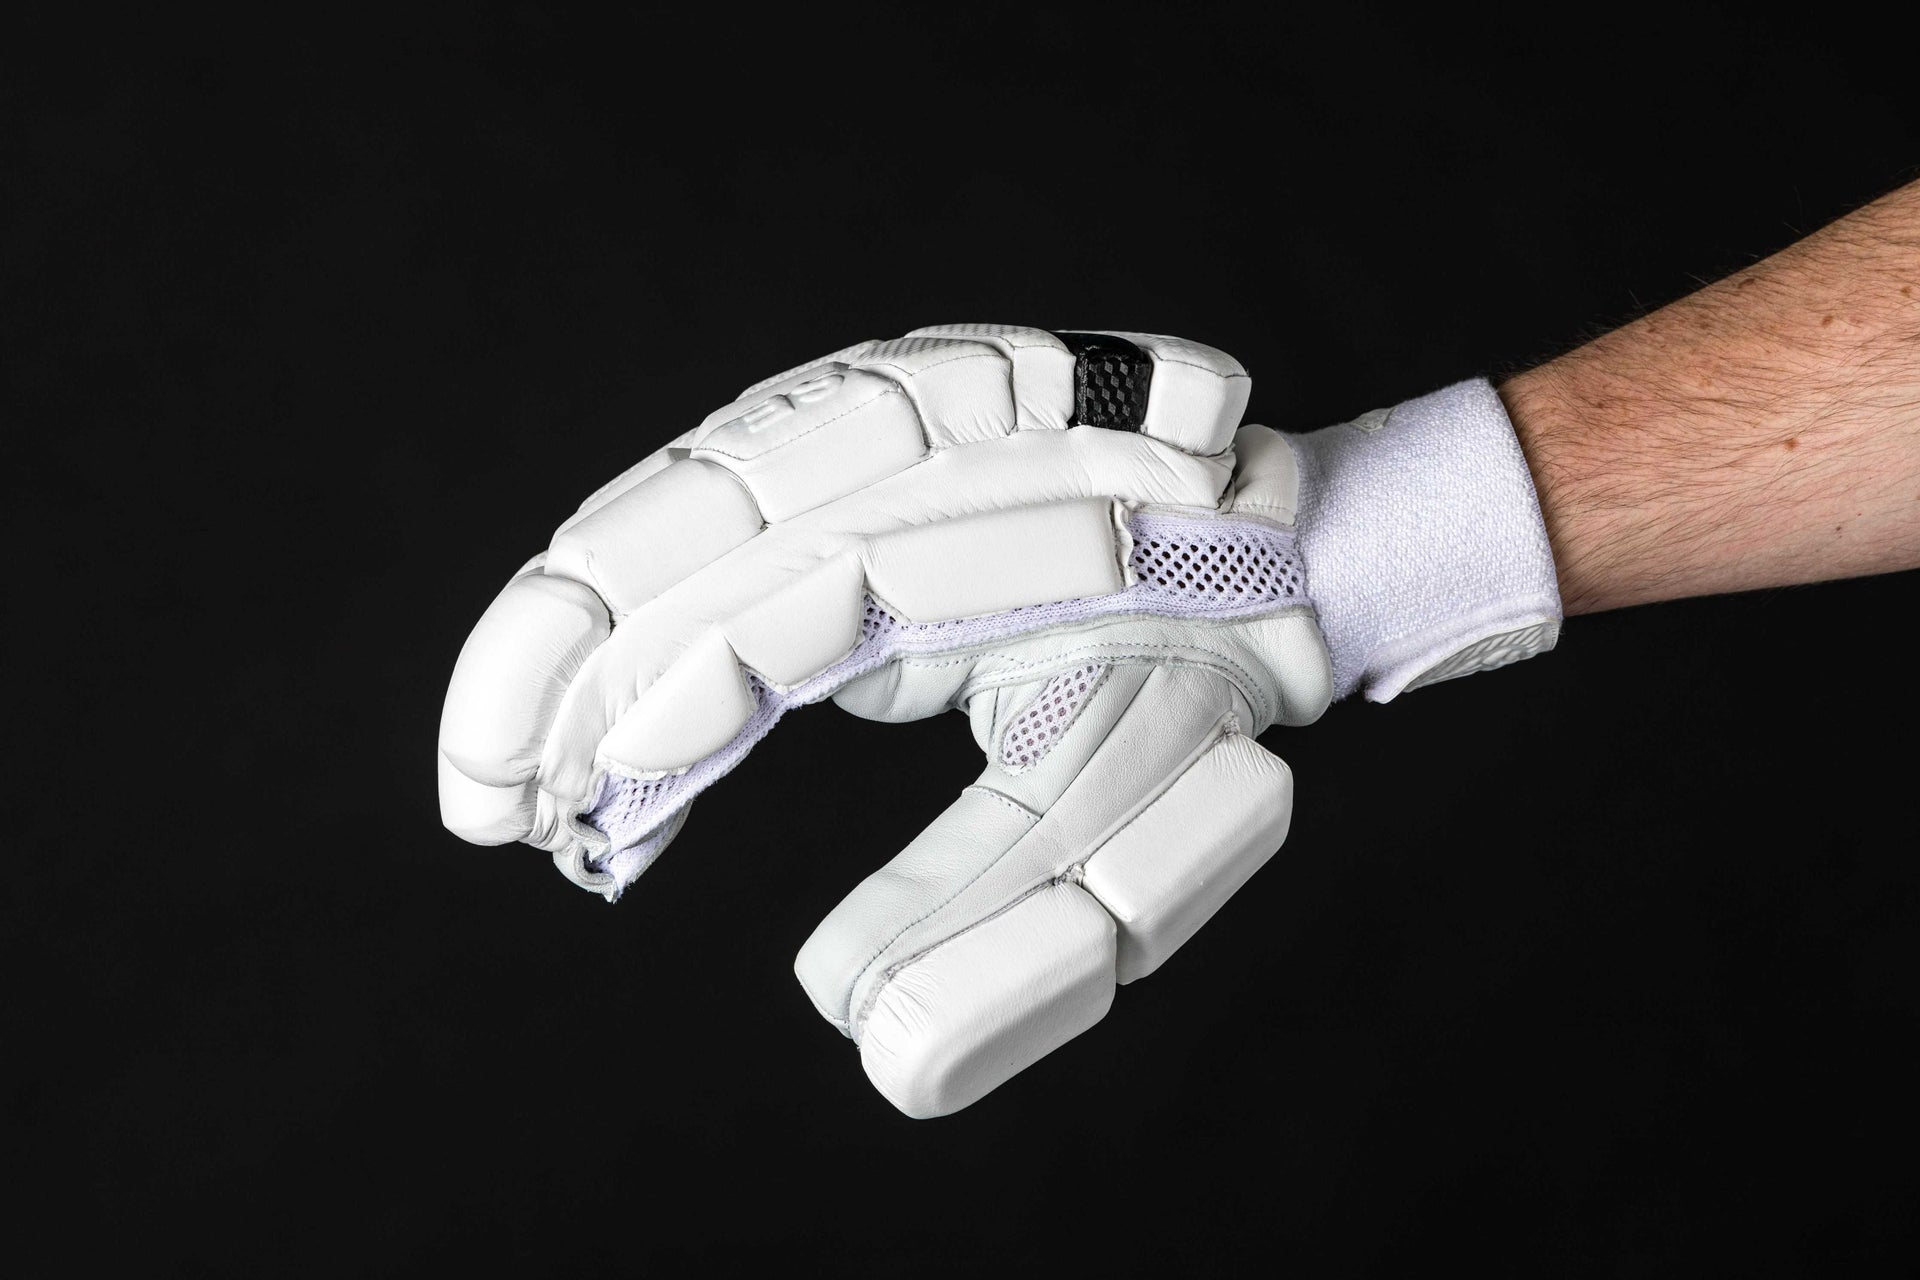 COBRA-SPECIAL EDITION Batting Gloves